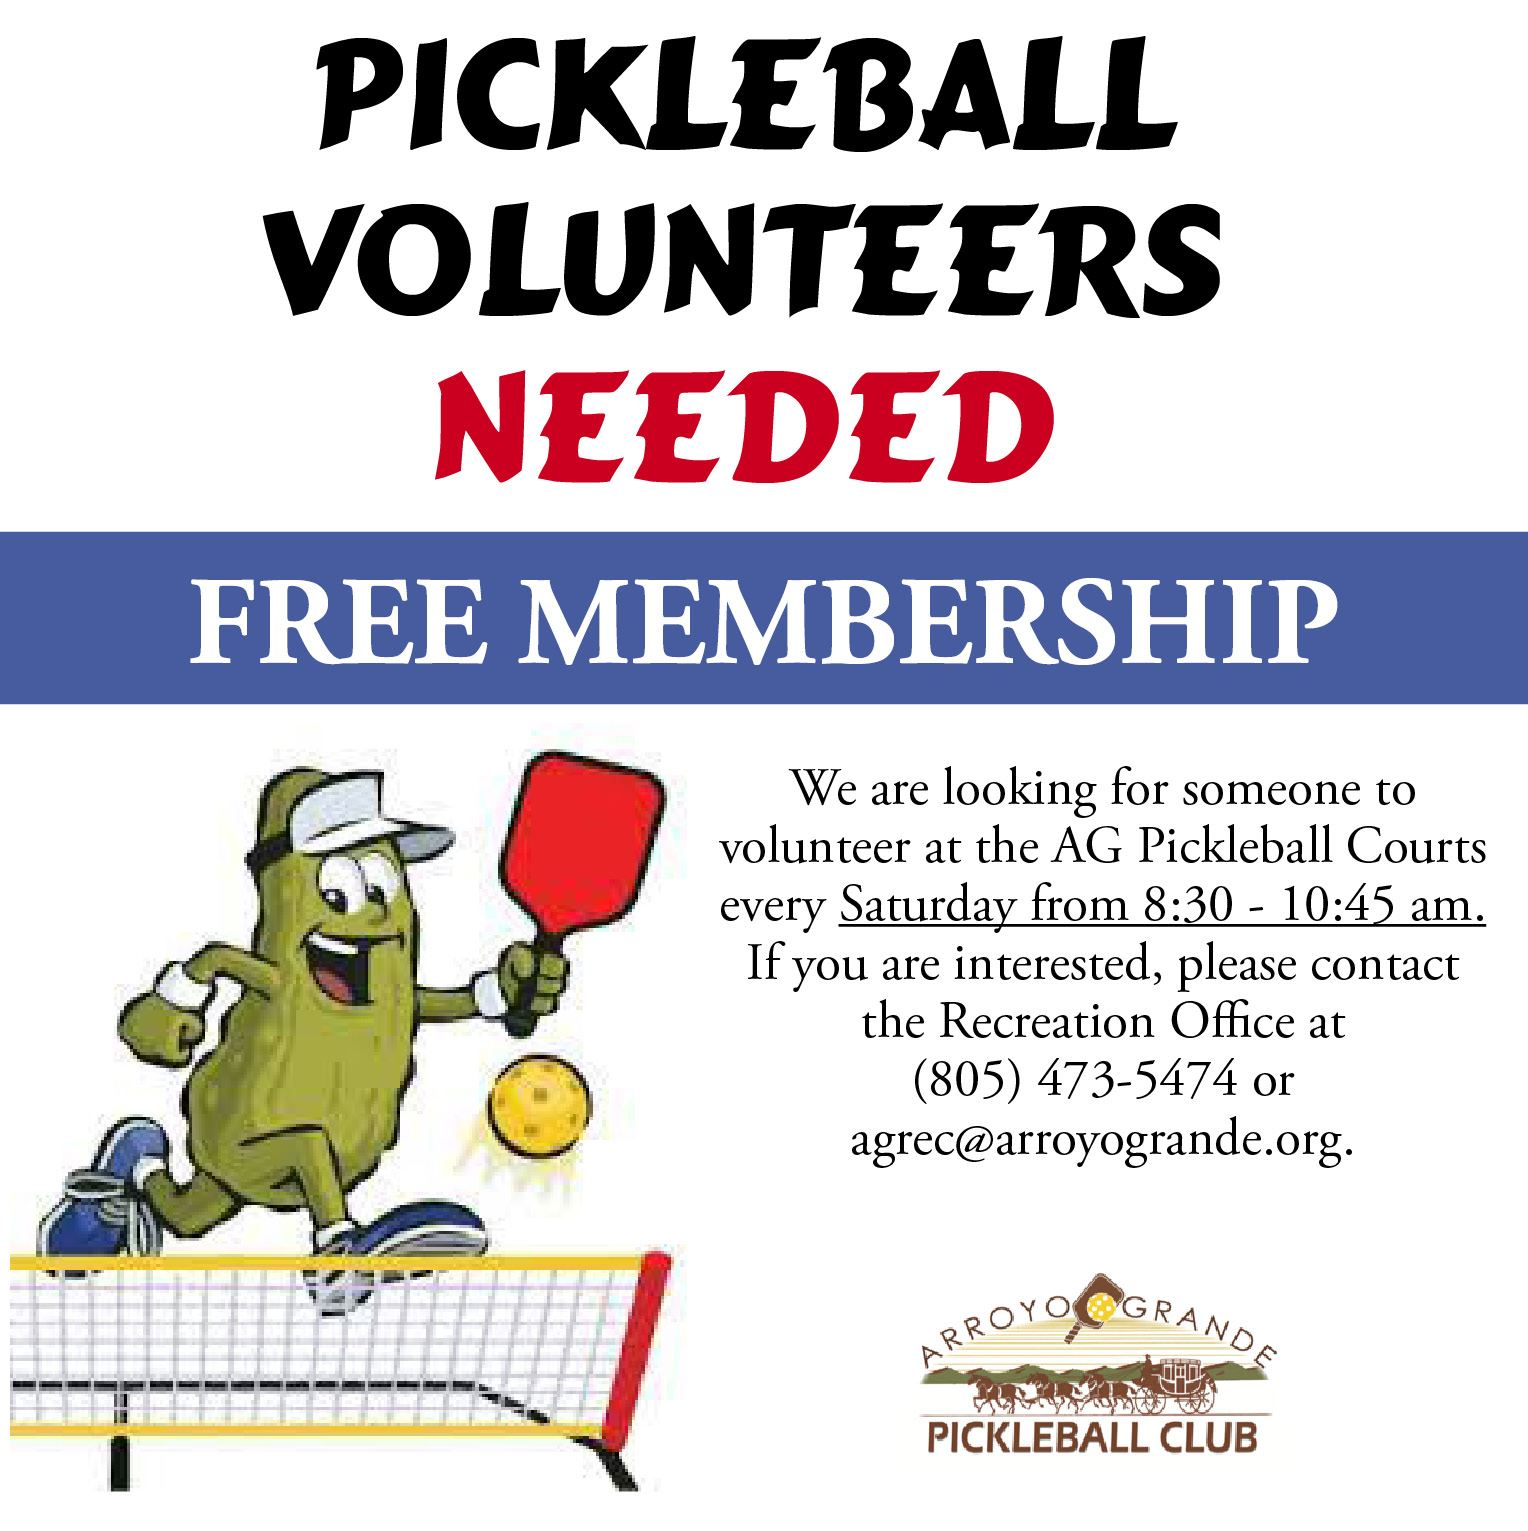 Pickleball Volunteers Needed